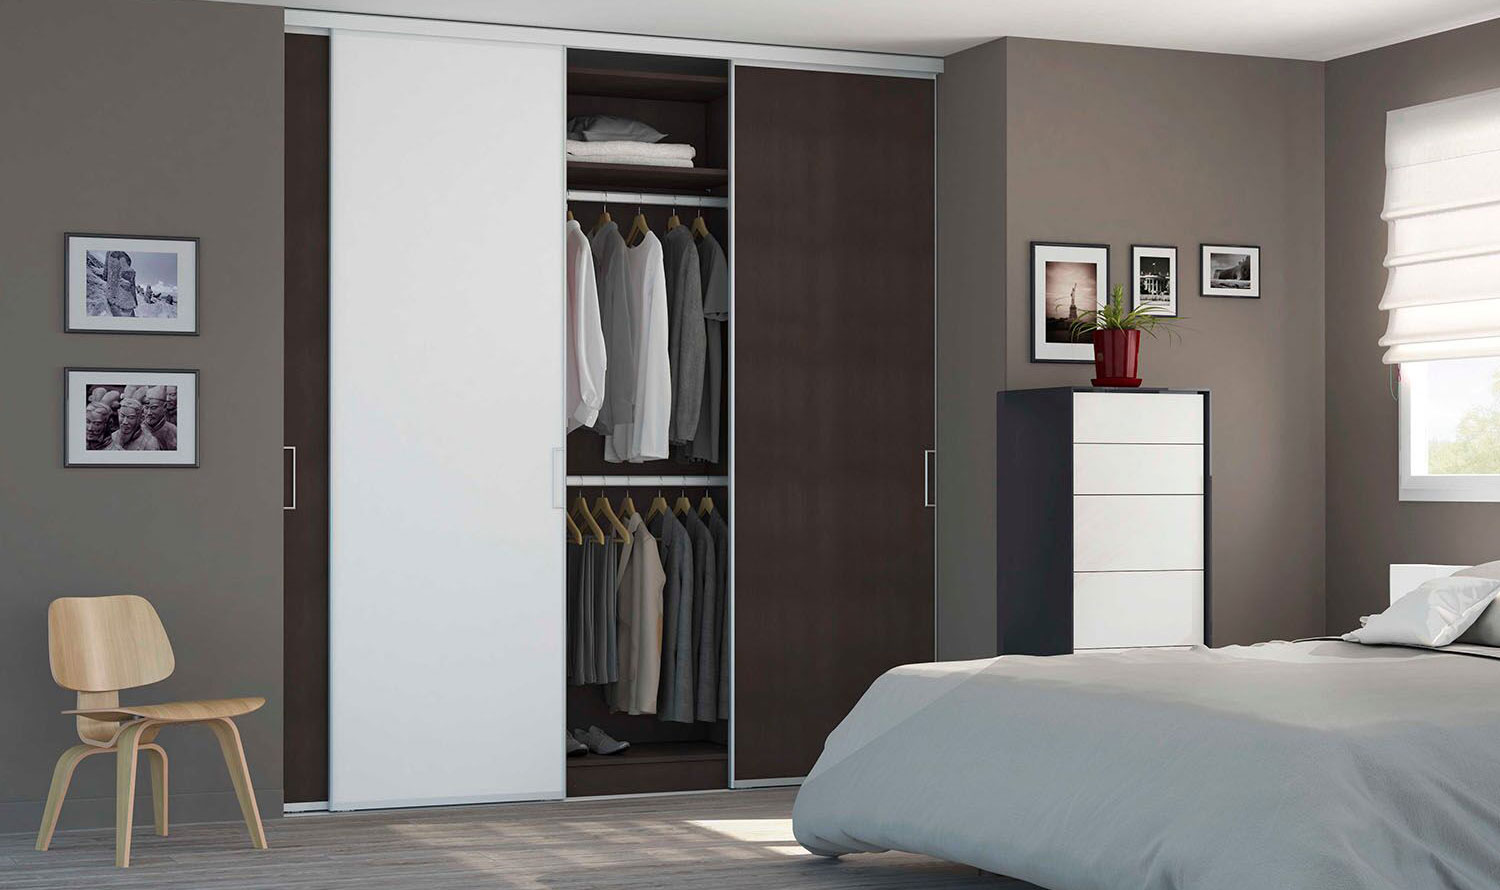 faire son dressing avantages inconv nients blog. Black Bedroom Furniture Sets. Home Design Ideas